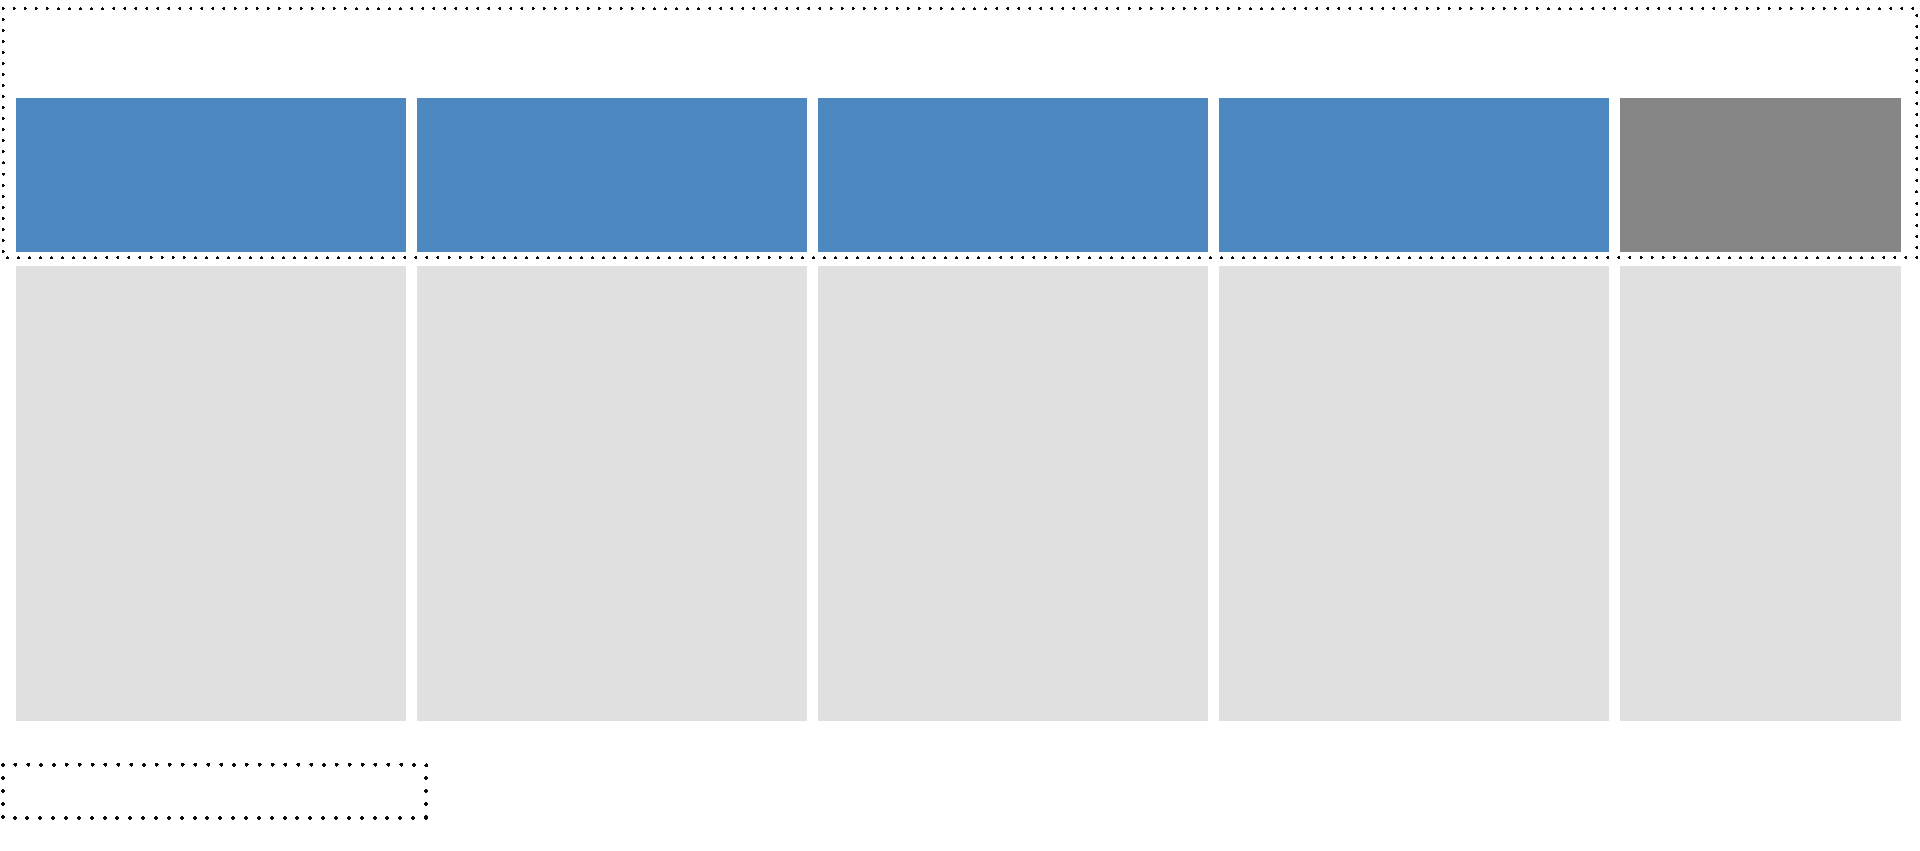 This visual shows Philips' segment structure